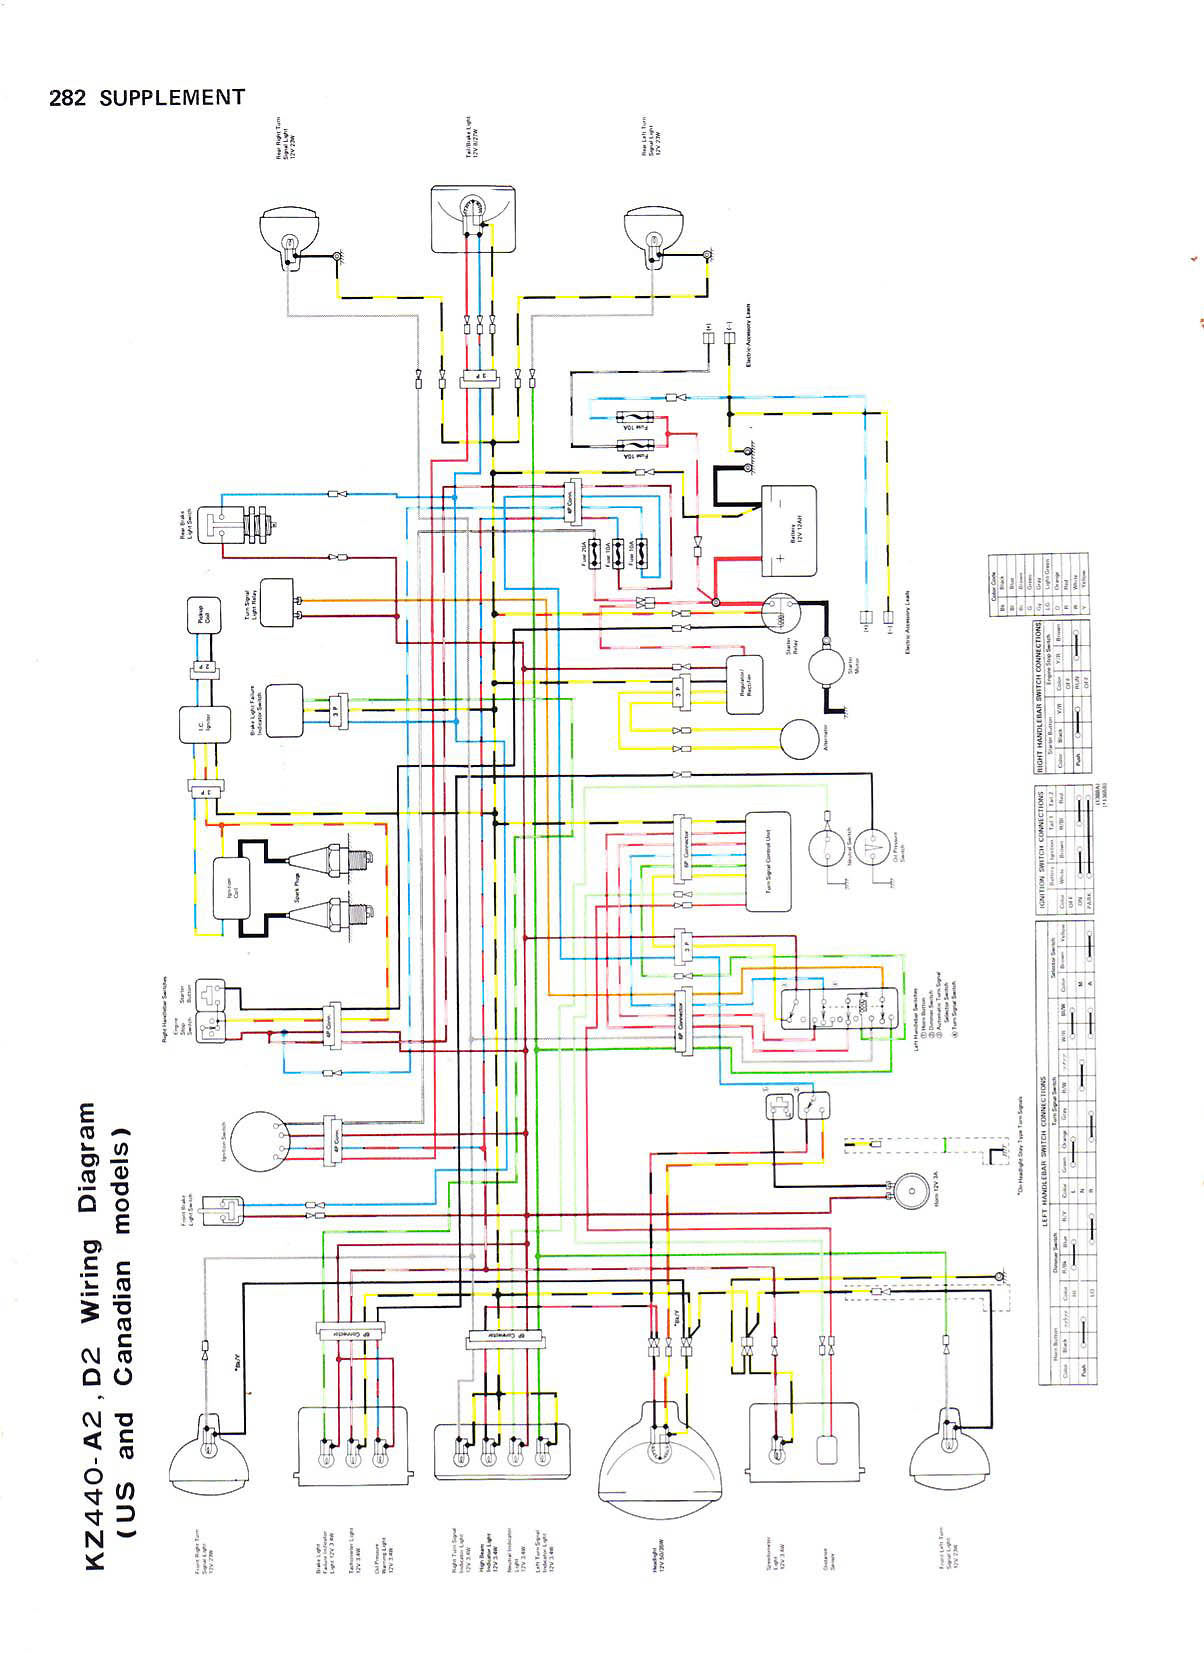 Kawasaki KZ 440 %2780 a %2782 Service Manual_Page_279 index of kz440 wiring diagrams kz440 wiring diagram at creativeand.co